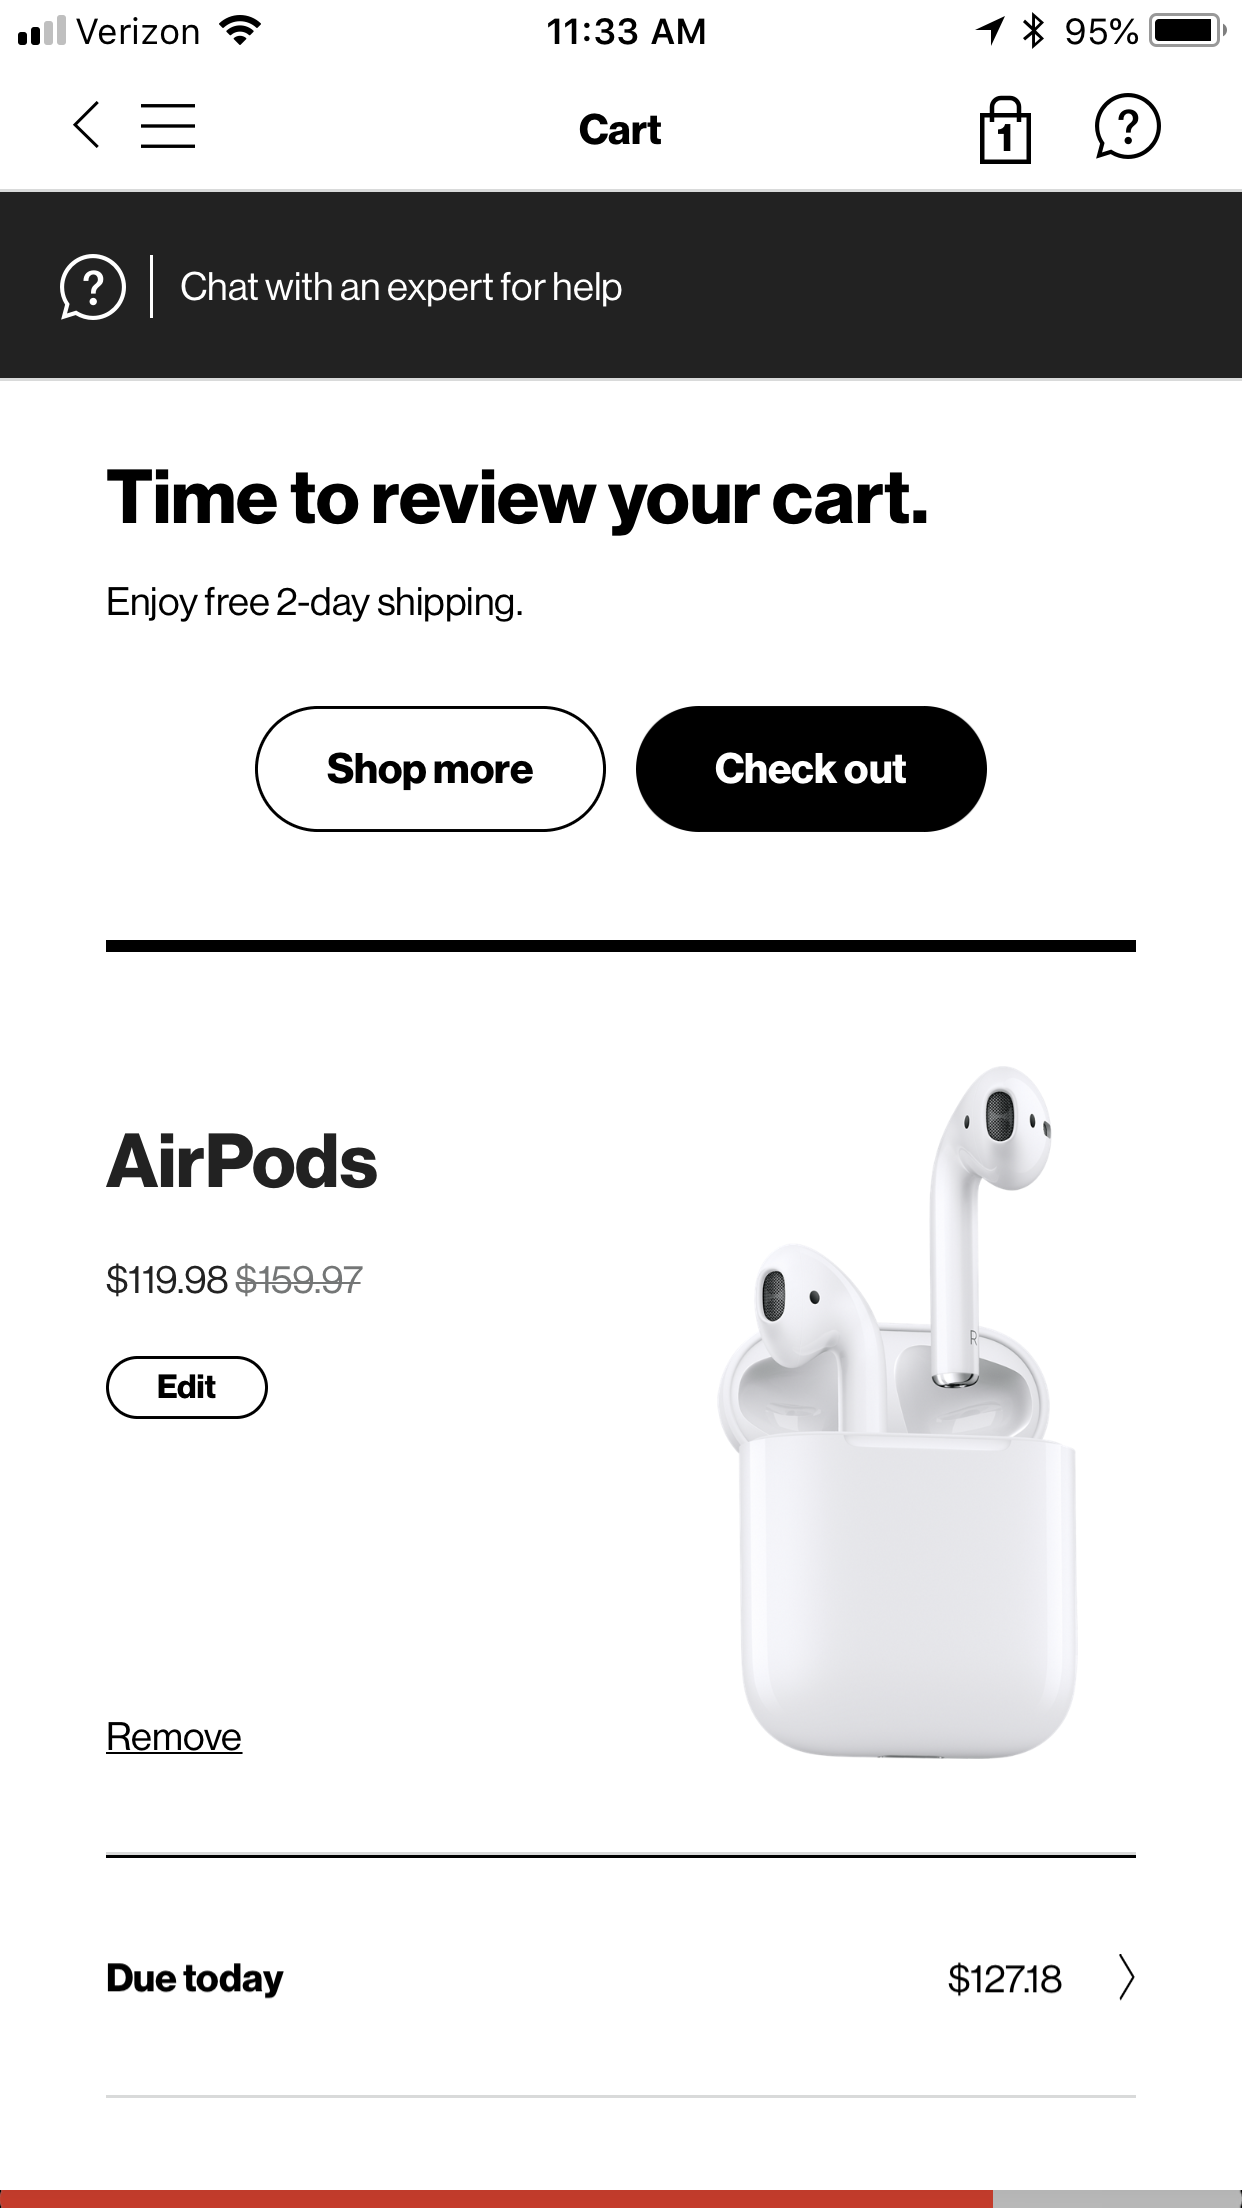 Apple Airpods on sale in My Verizon app for $119.98 $127.98